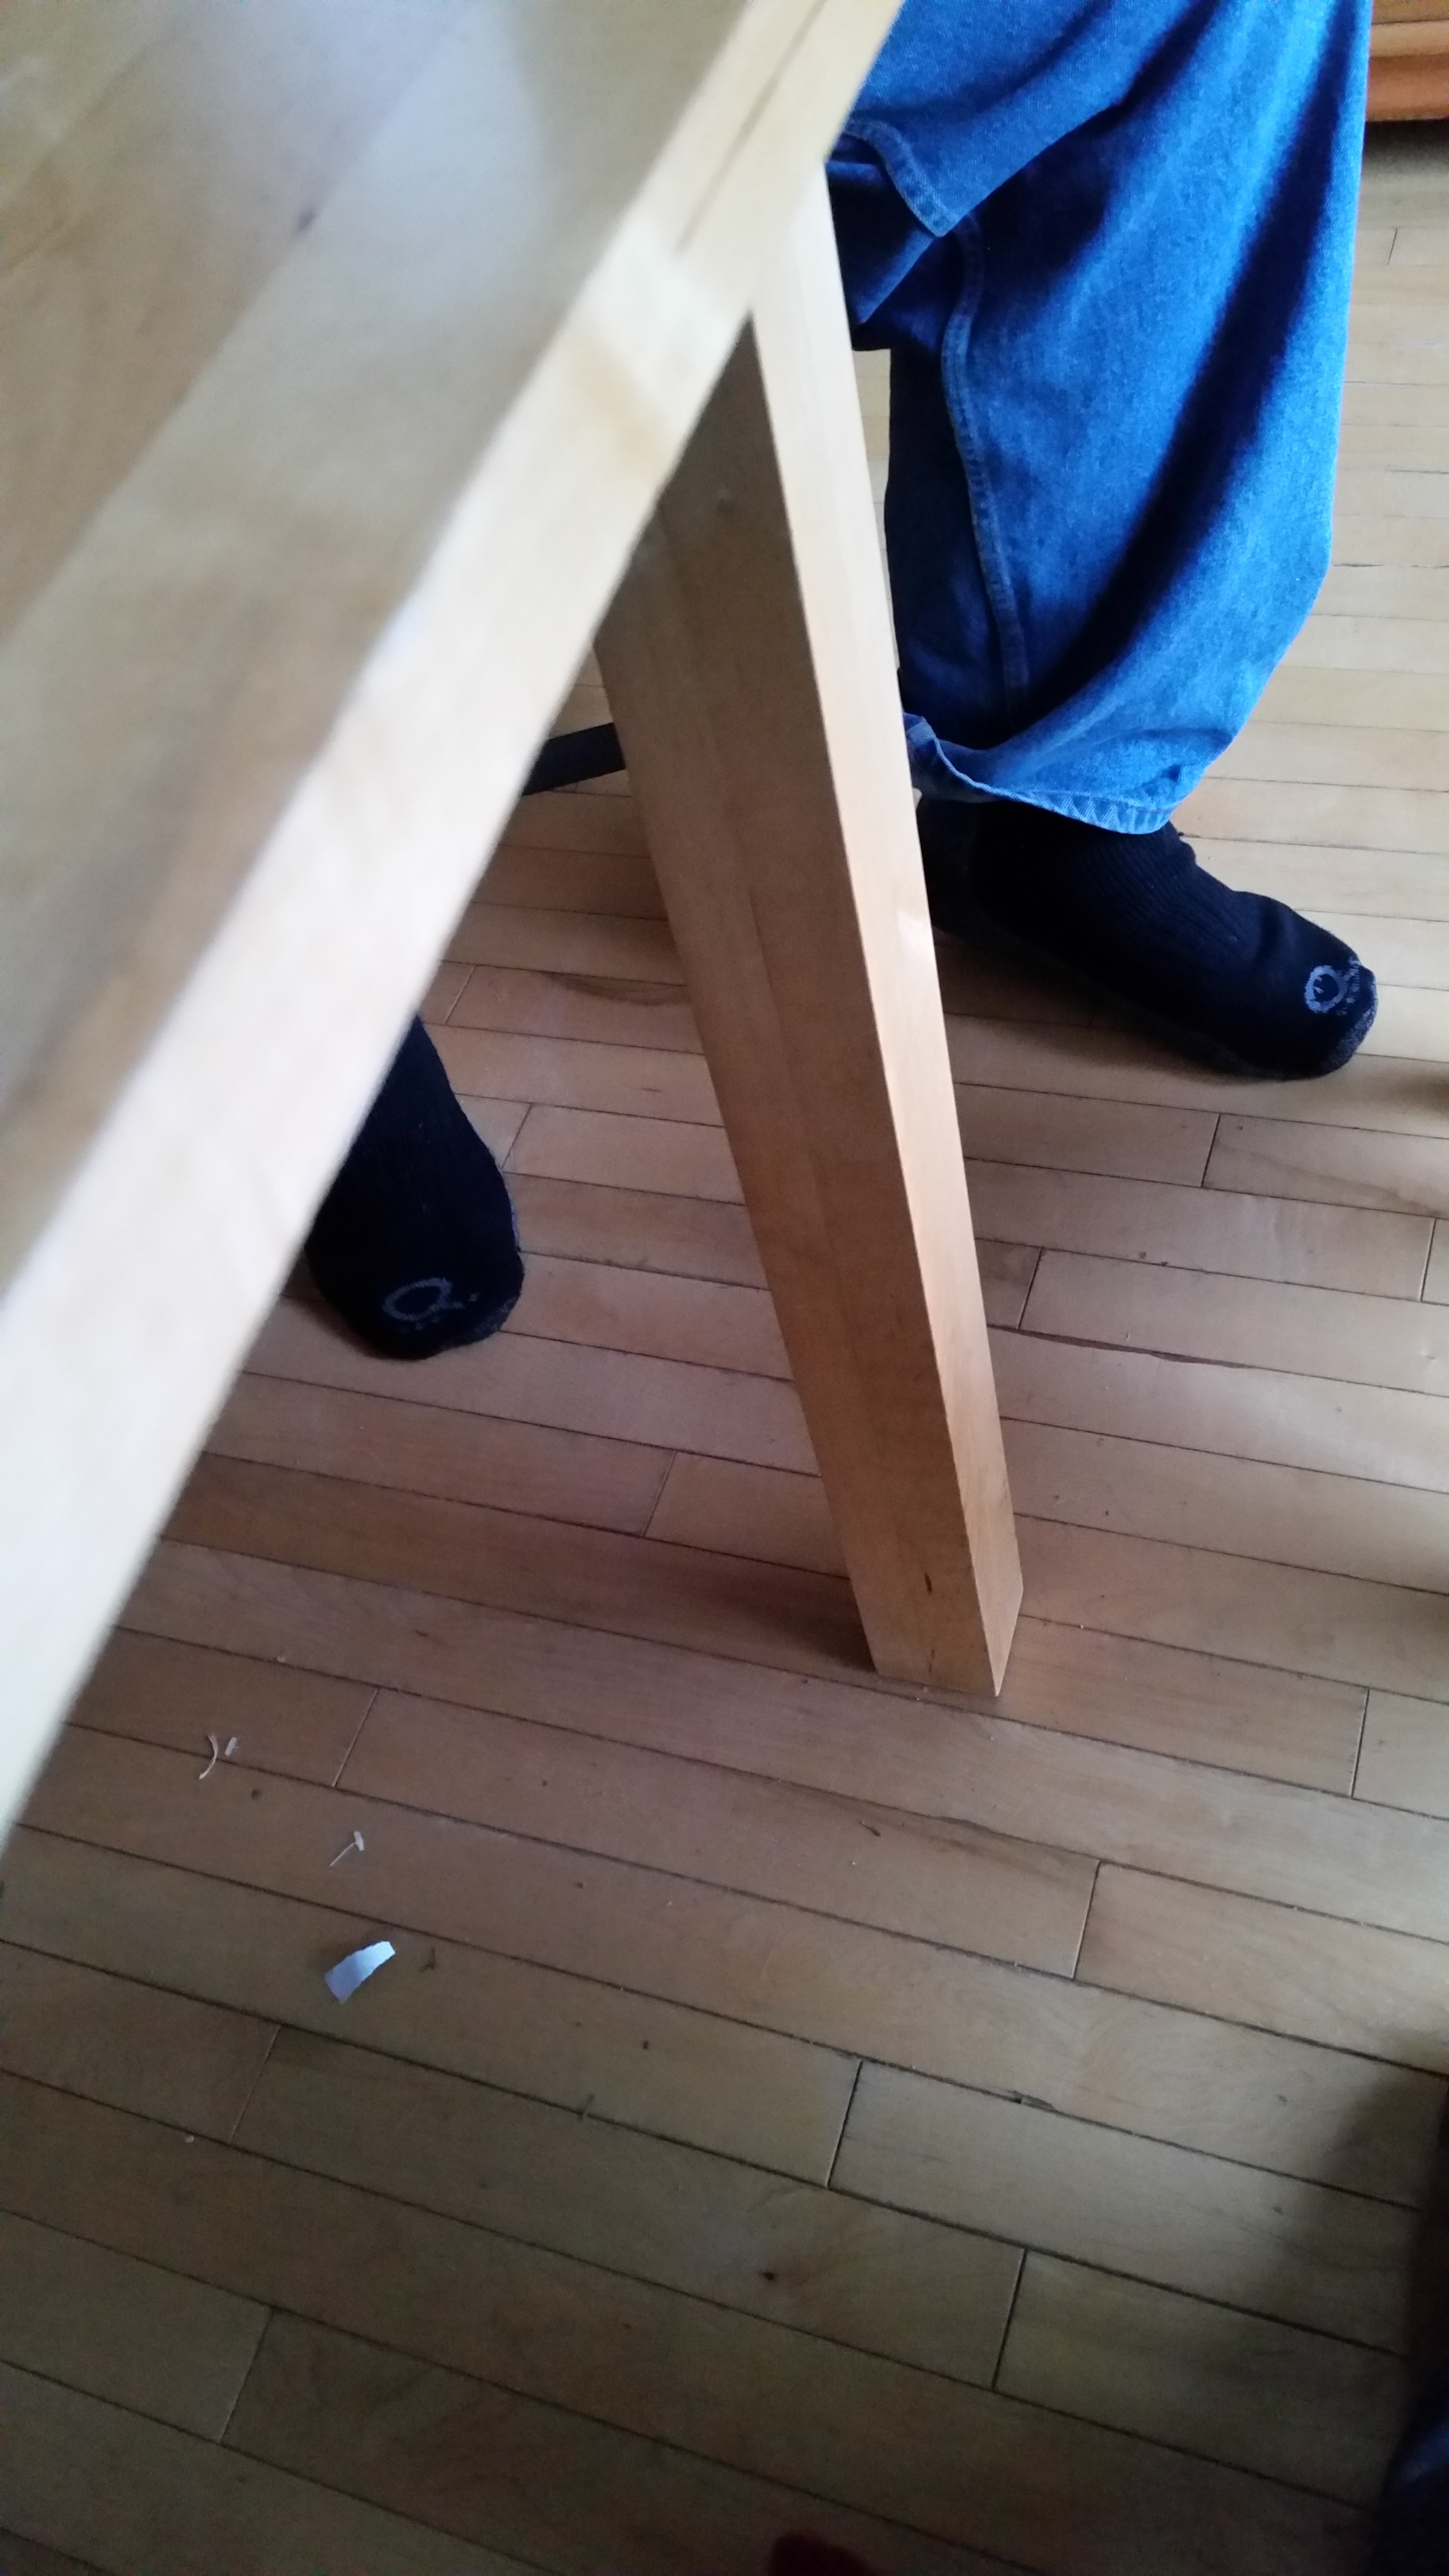 Table and Feet